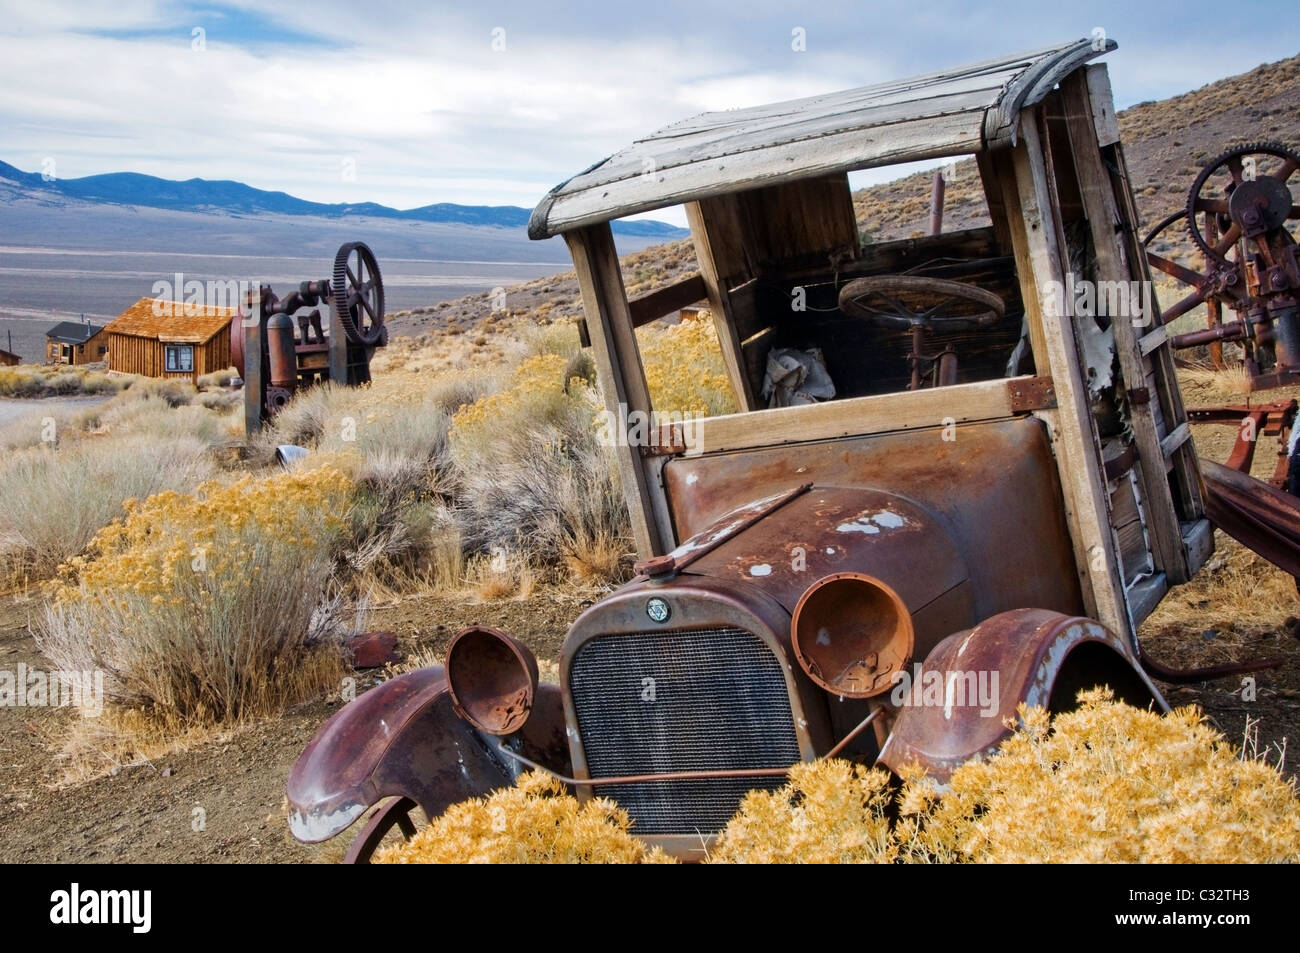 An old abandoned car sits permanently idle in the ghost town of Berlin, NV. - Stock Image